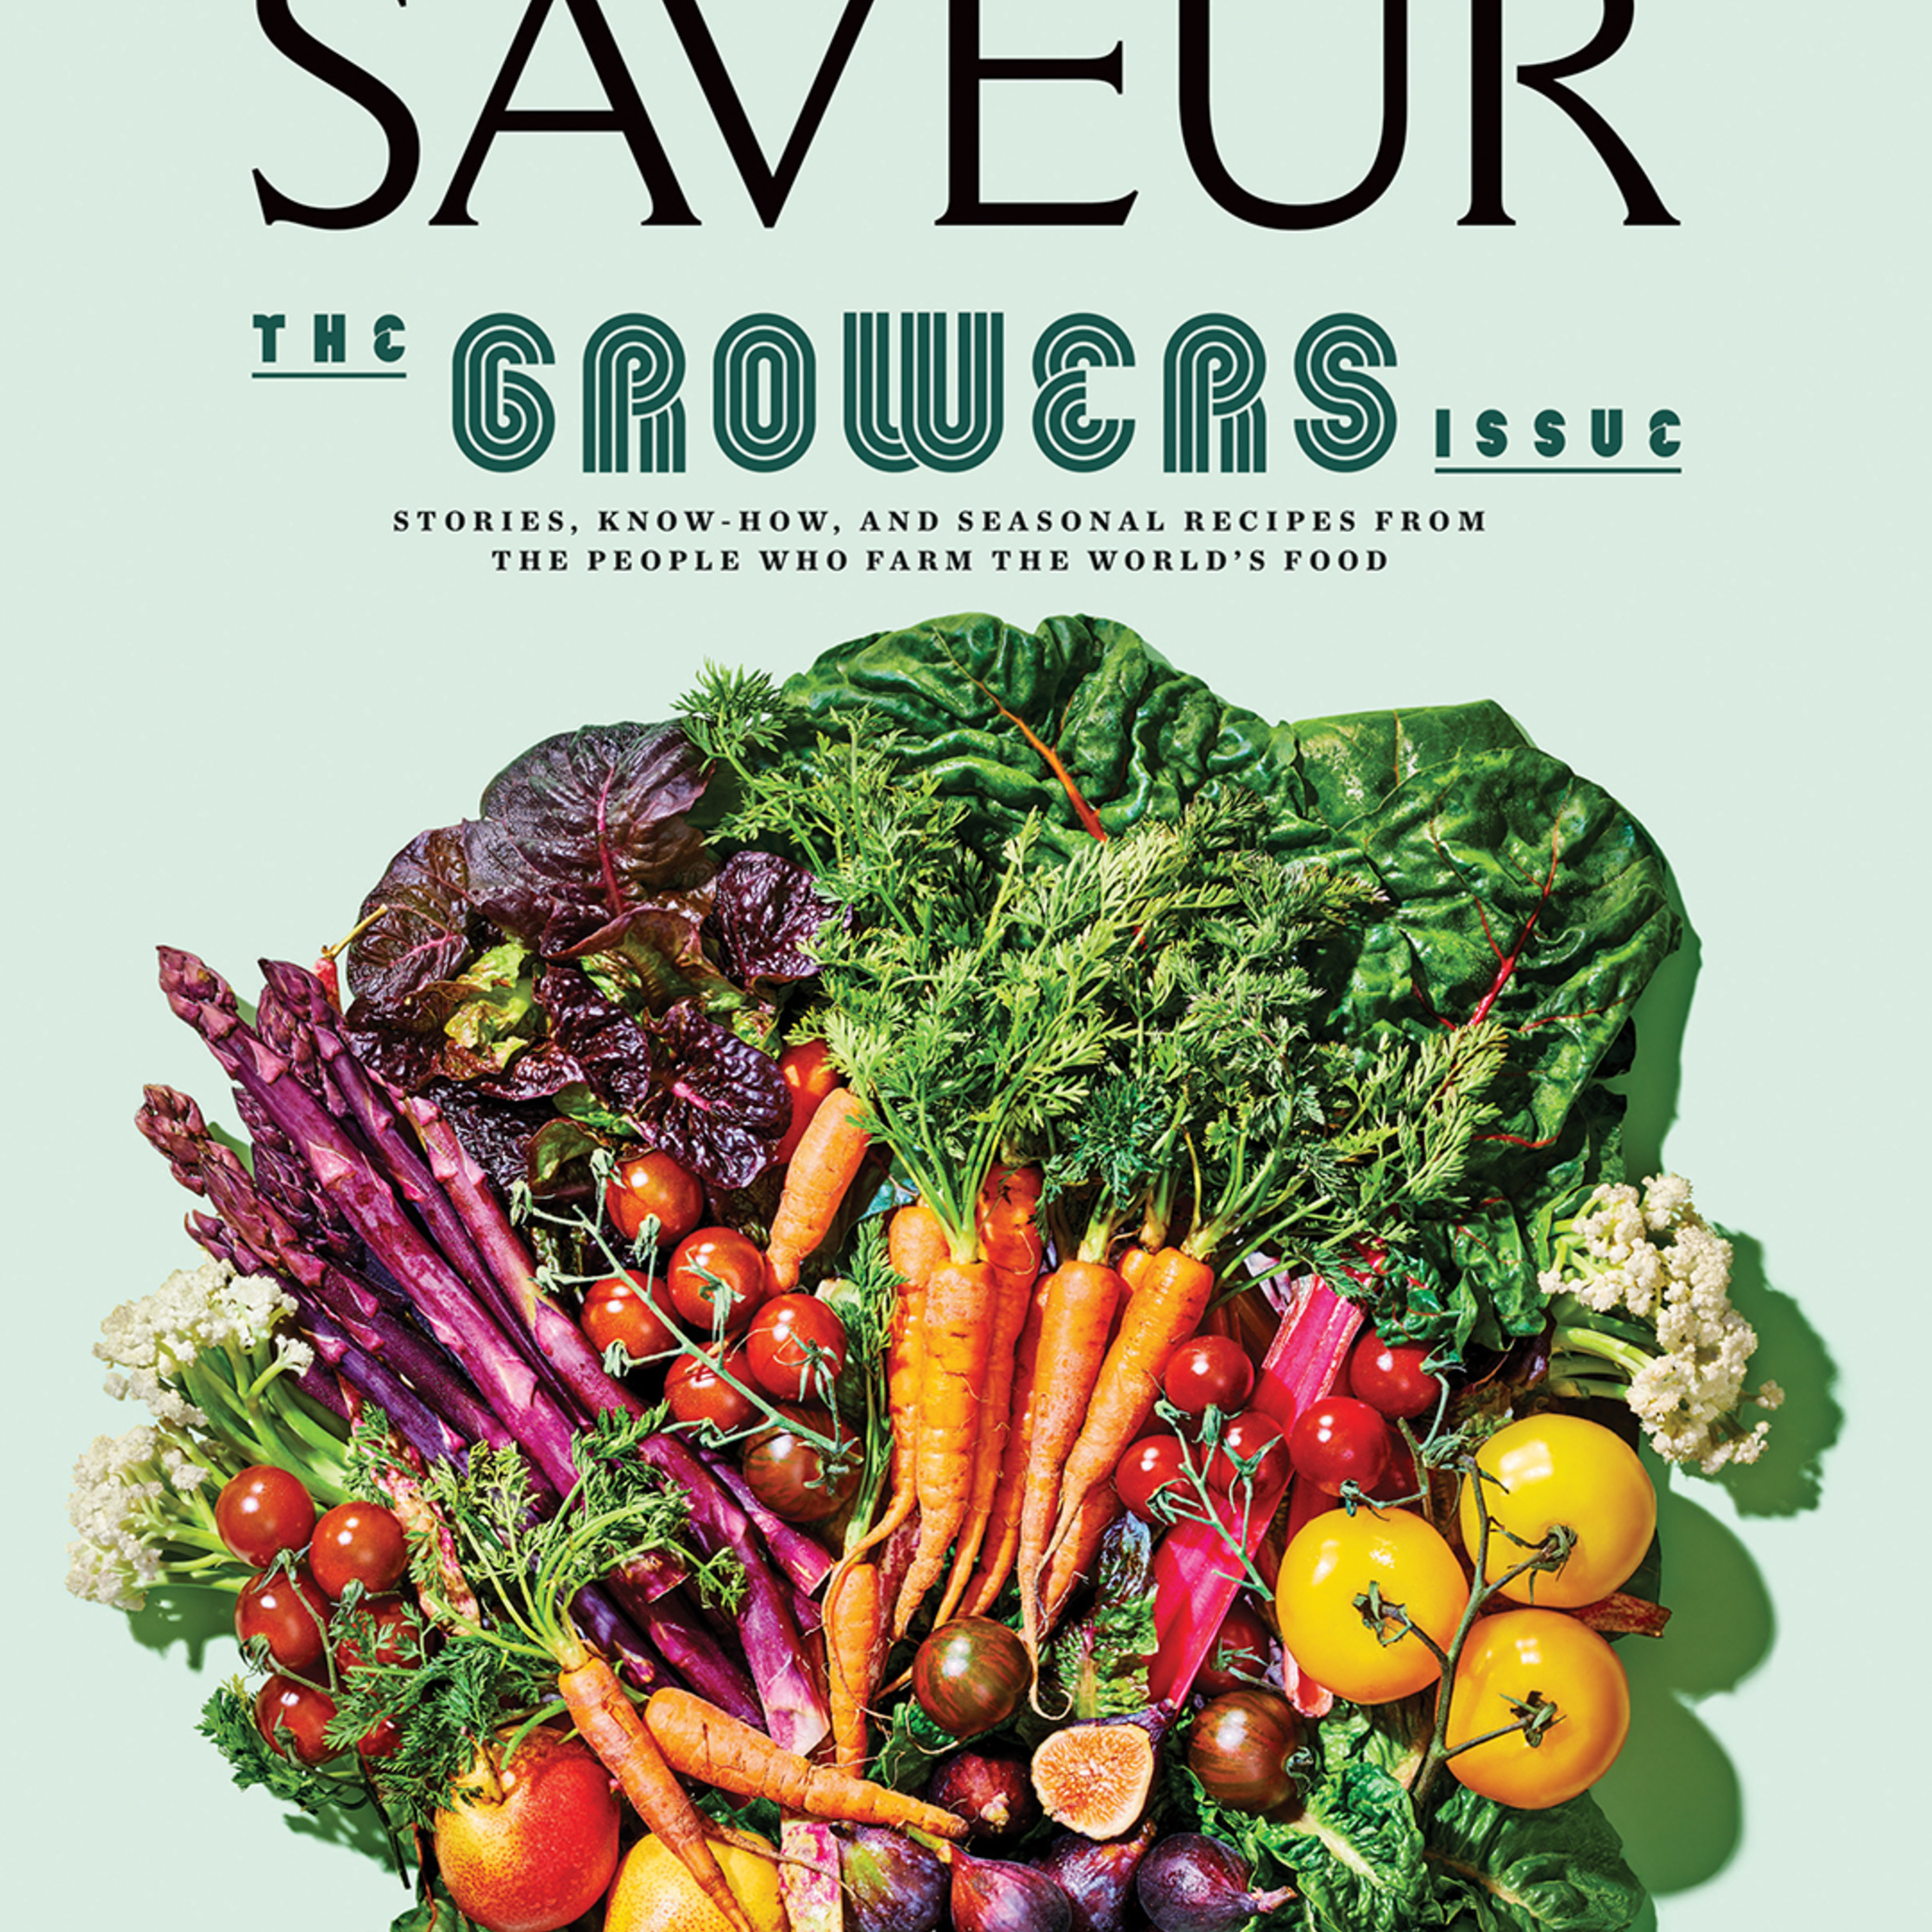 Episode 360: The Grower's Issue